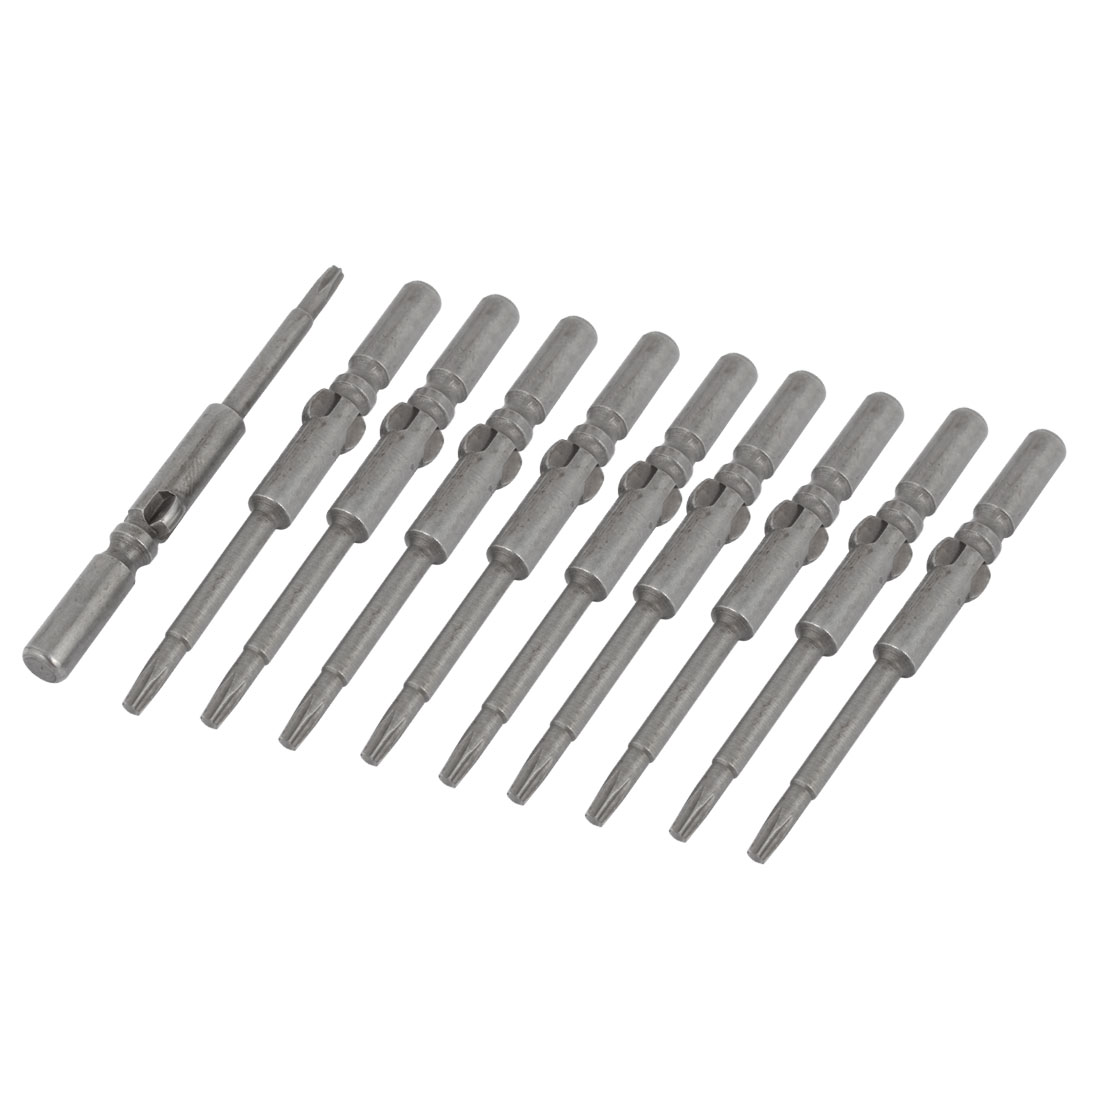 10 Pcs Magnetic 2.3mm Tip T8 5mm Round Shank Metal Torx Screwdriver Bits